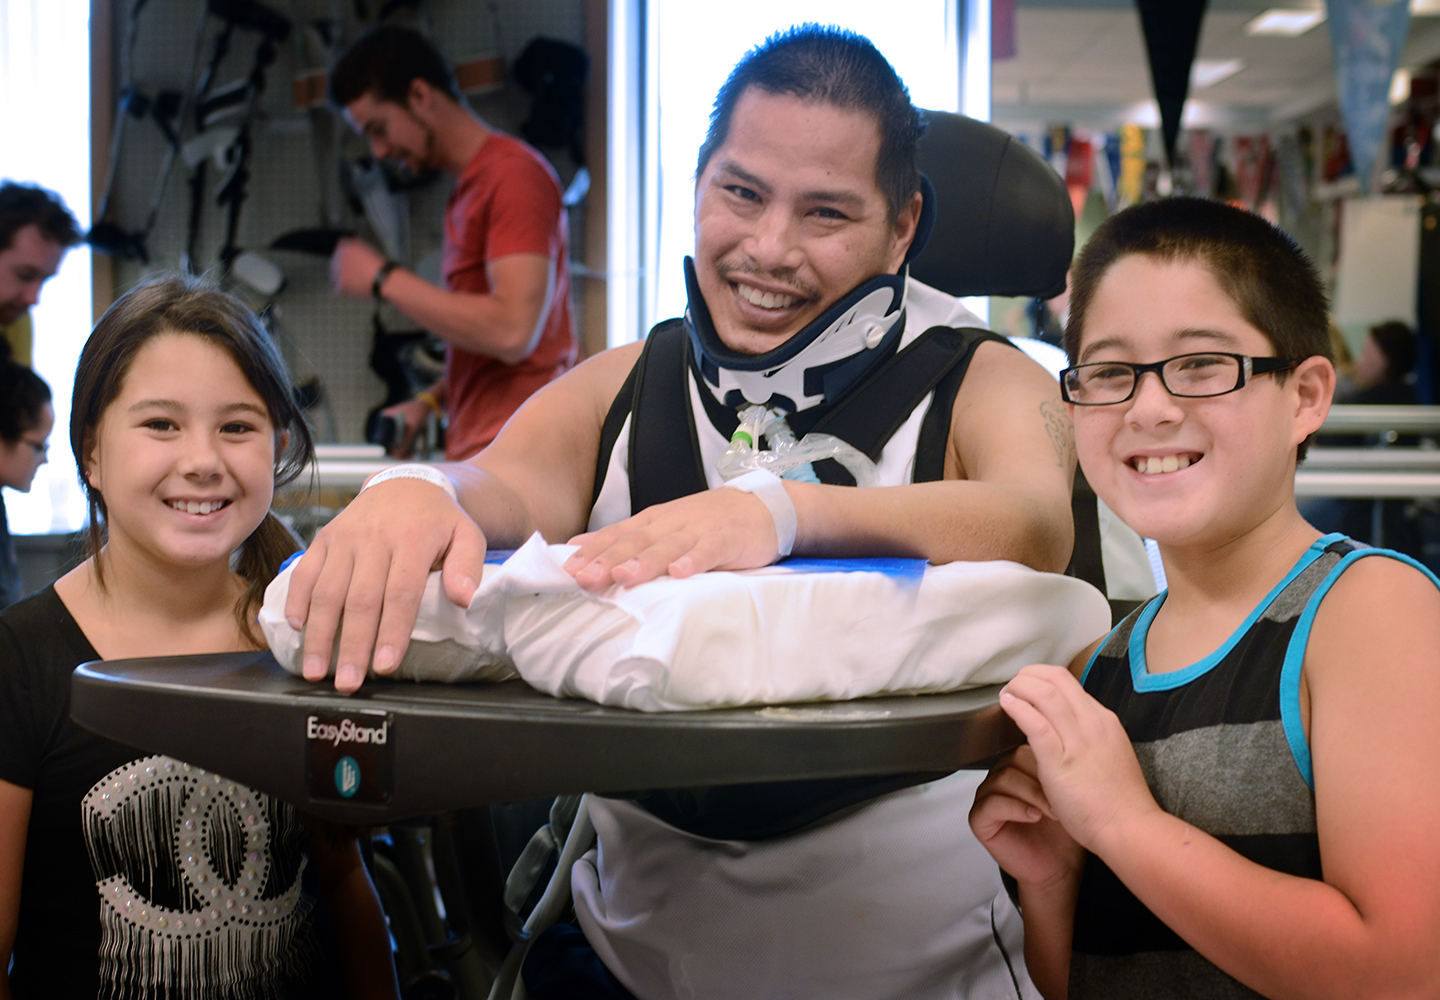 Spinal Cord Injury Patient's Family Involvement in Rehabilitation at Craig Hospital